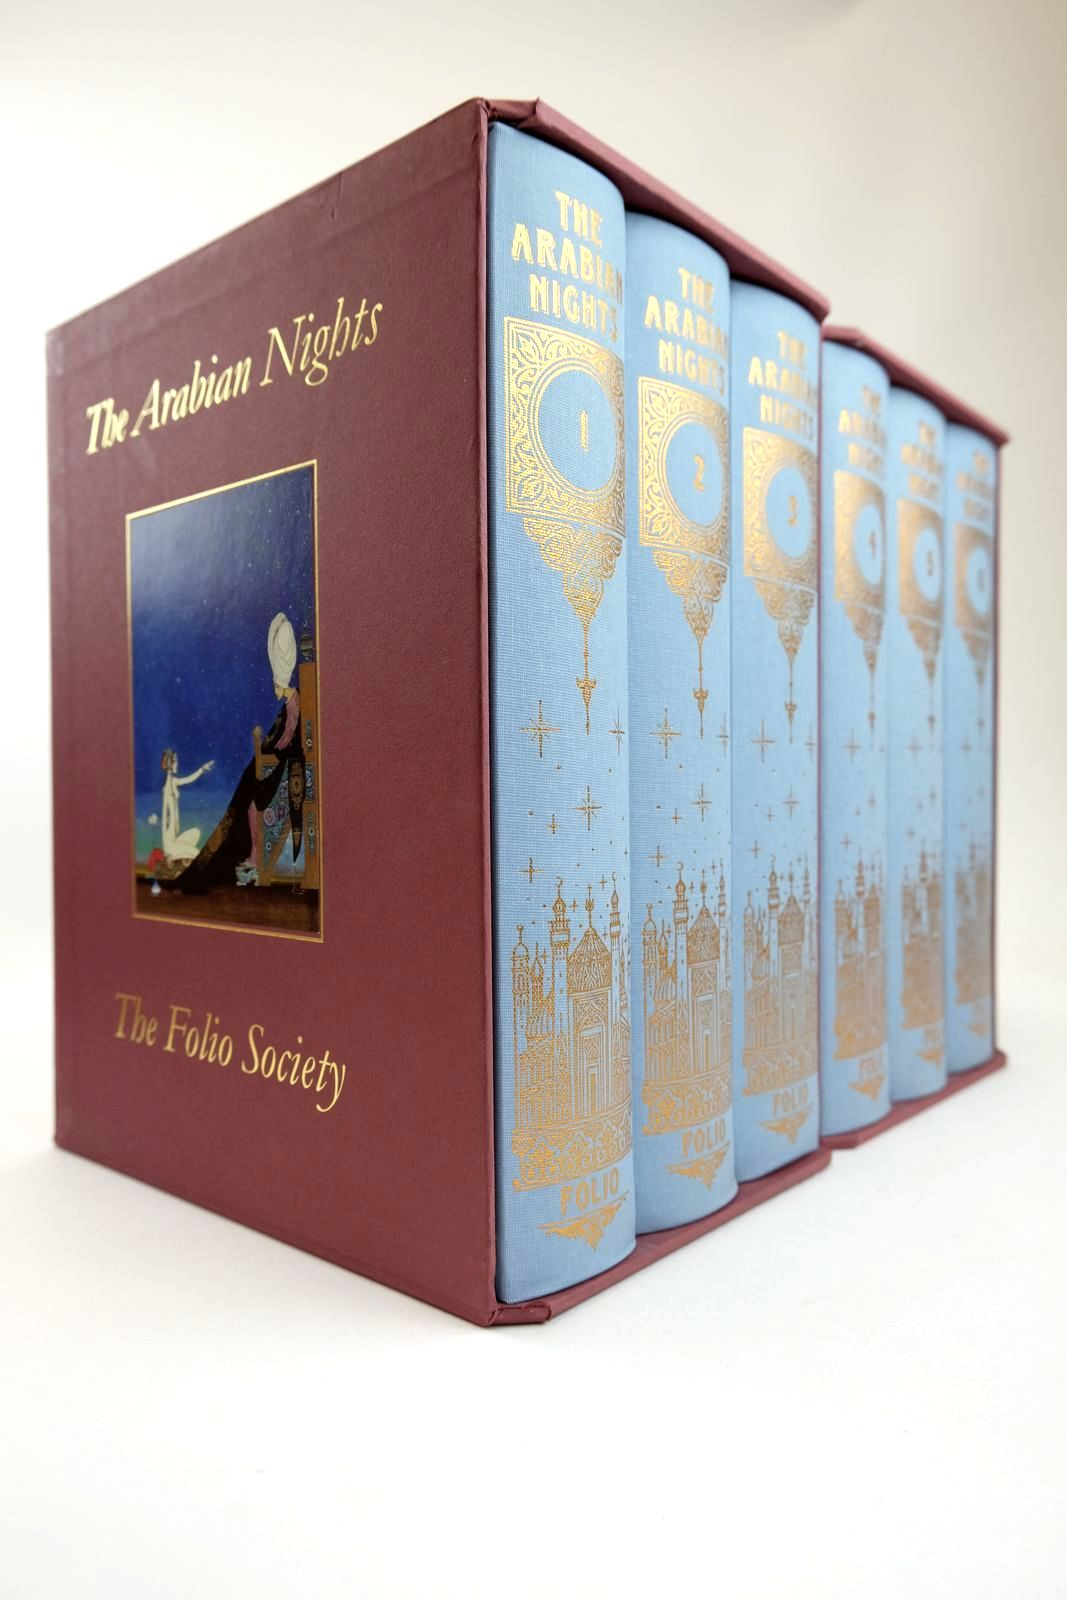 Photo of THE ARABIAN NIGHTS (6 VOLUMES) illustrated by Nielsen, Kay Baker, Grahame Pisarev, Roman Ray, Jane Packer, Neil published by Folio Society (STOCK CODE: 2132469)  for sale by Stella & Rose's Books